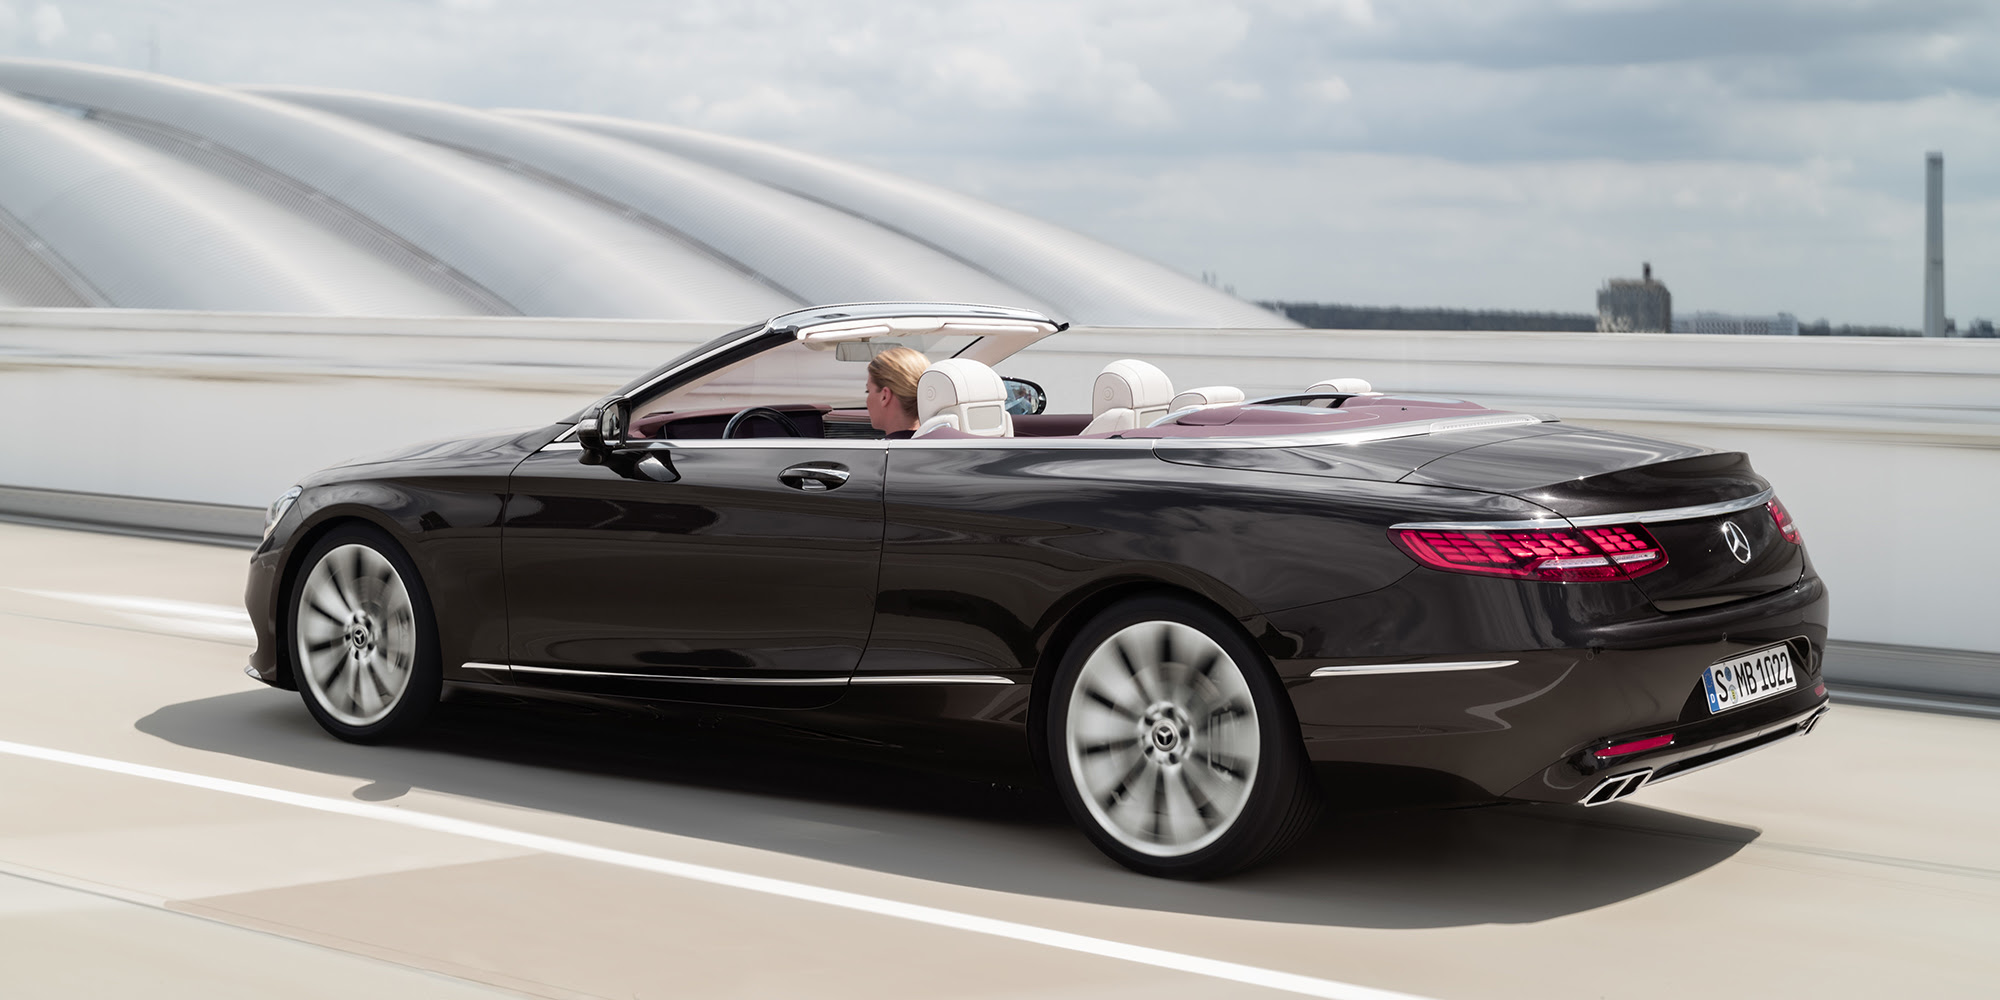 2018 Mercedes-Benz S-Class Coupe, Cabriolet revealed: Here ...